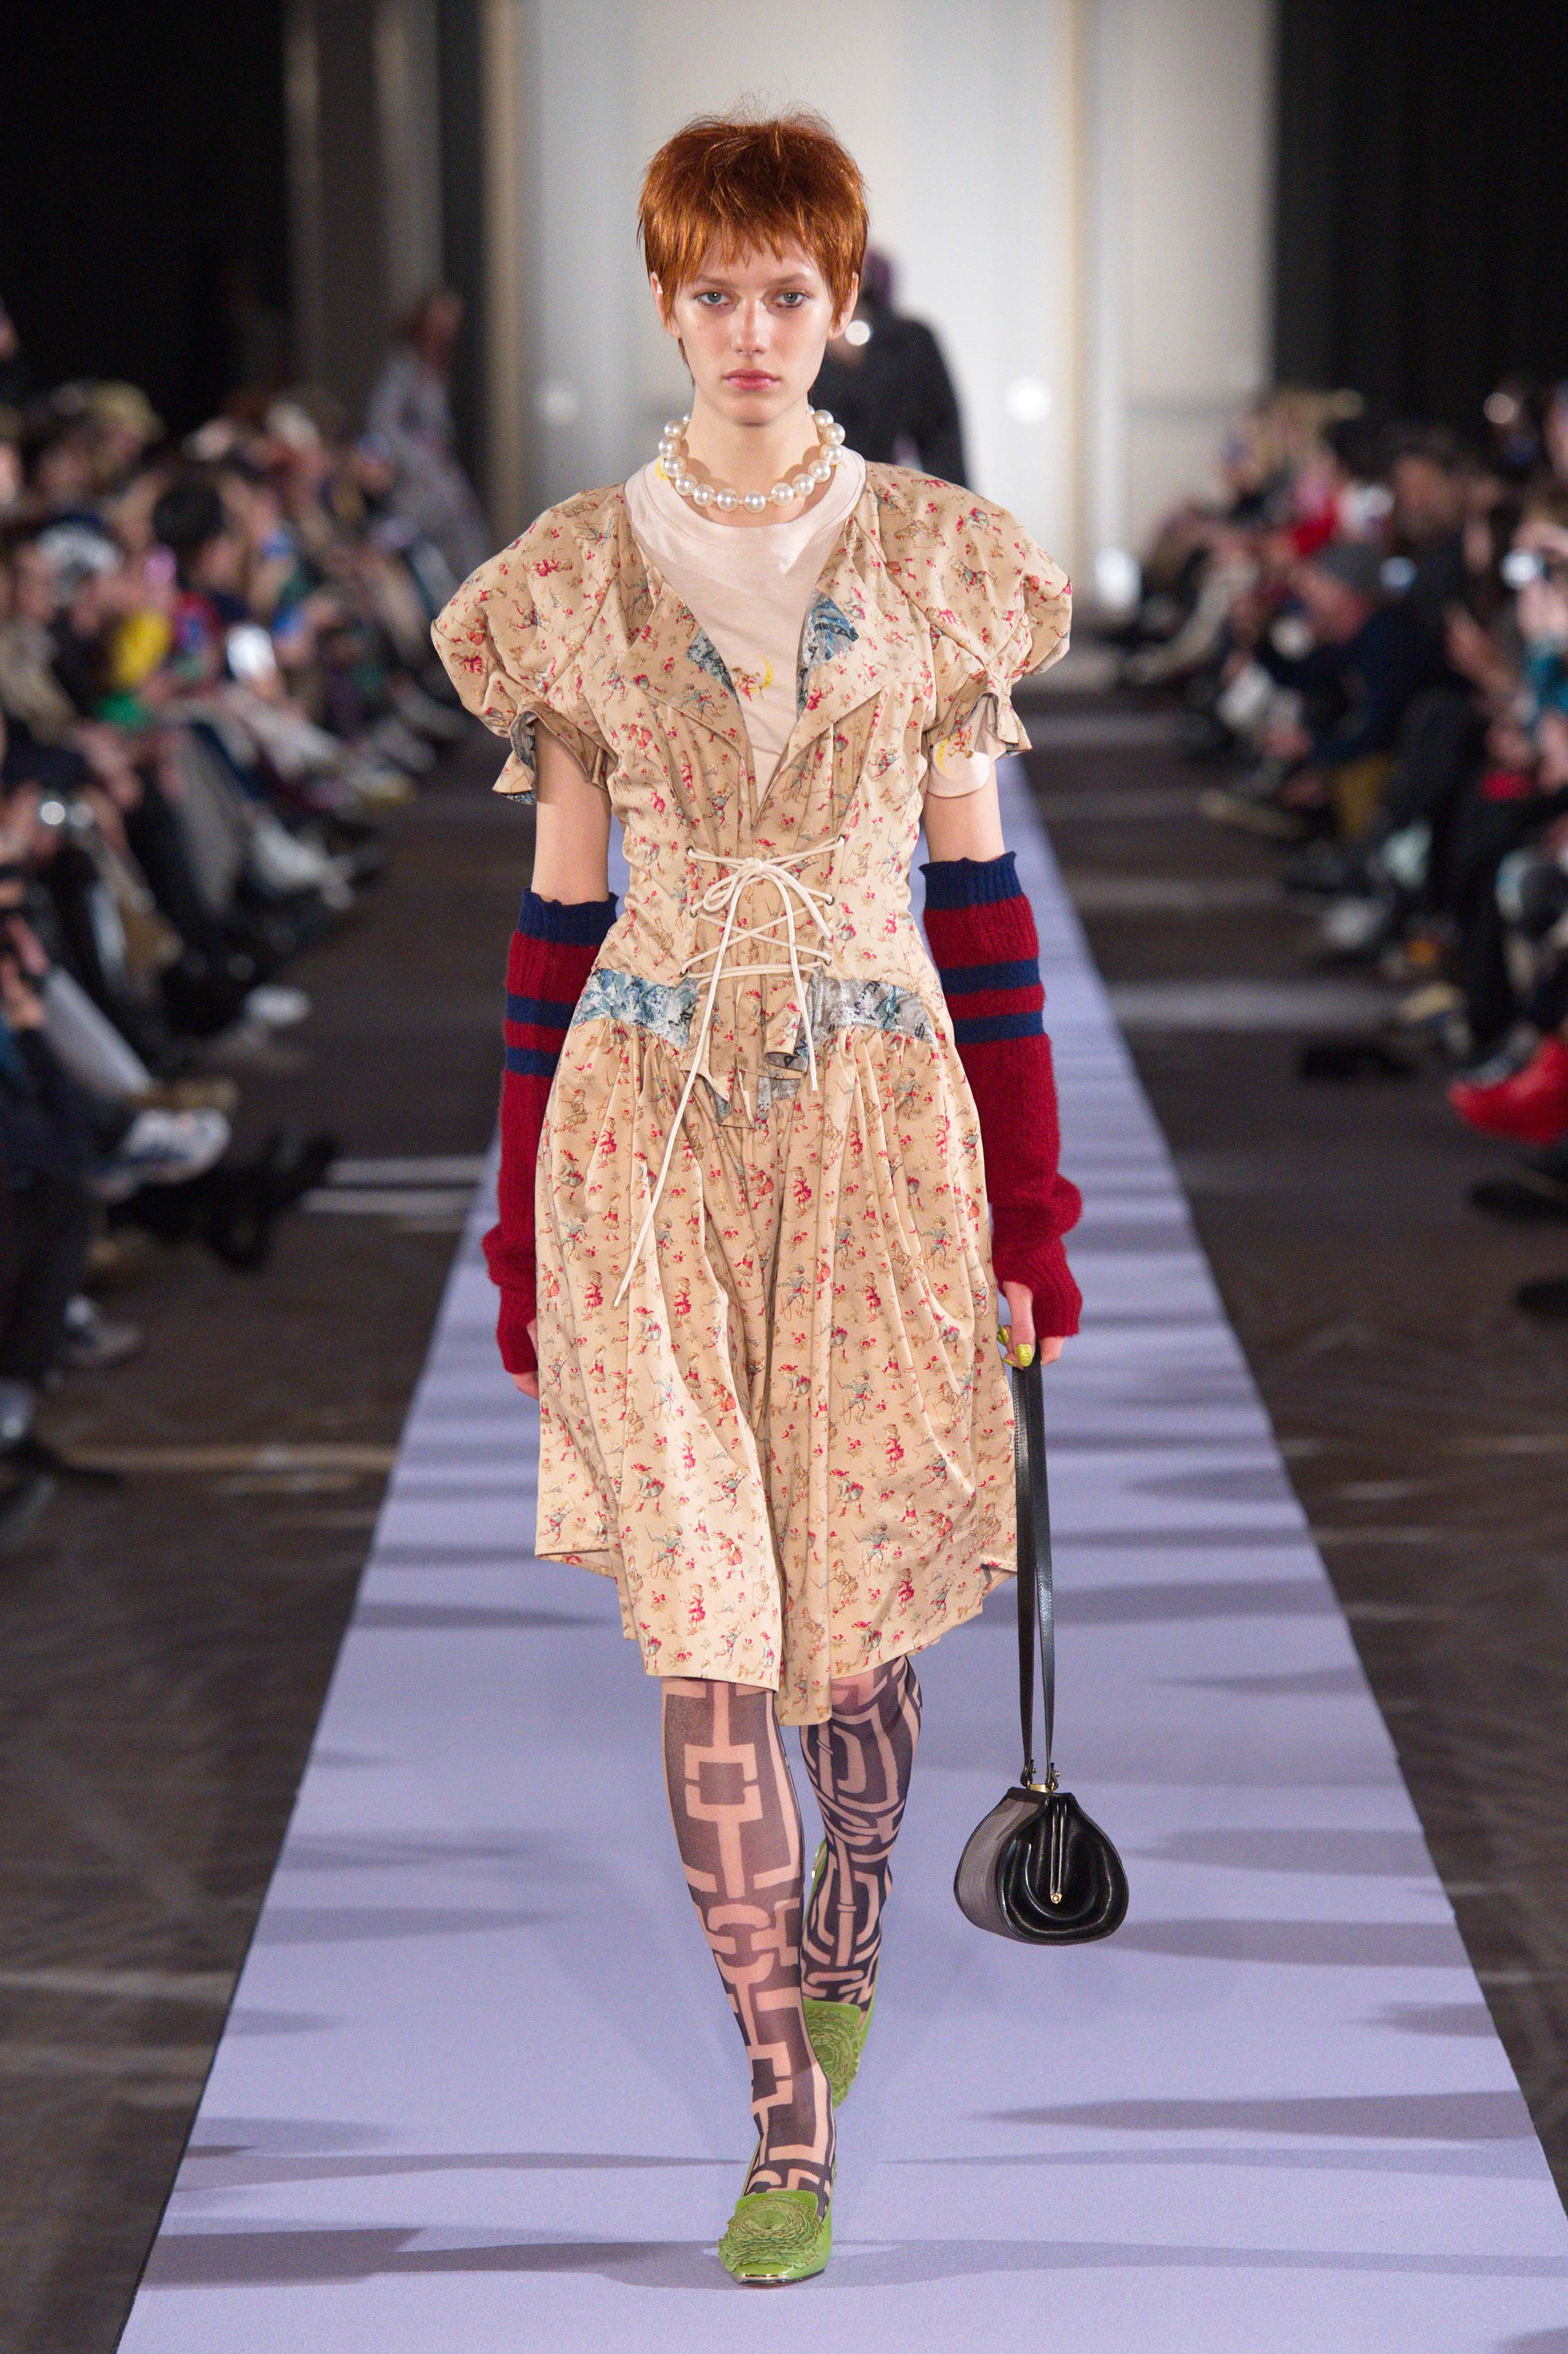 674098fddc211 The collecton   Andreas Kronthaler for Vivienne Westwood Autumn-Winter  19 20 Catwalk